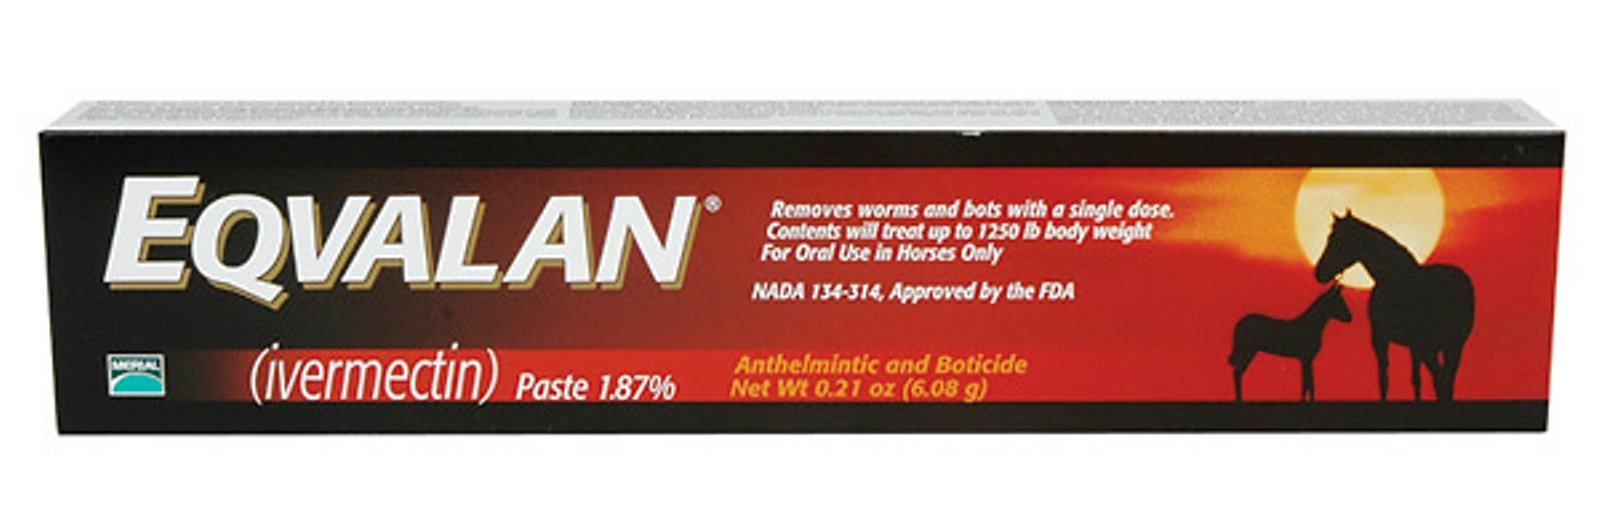 Eqvalan [Ivermectin 1.87%] De-Wormer For Horses, 0.21 oz. [6.08g] Paste by Unknown by Unknown (Image #1)